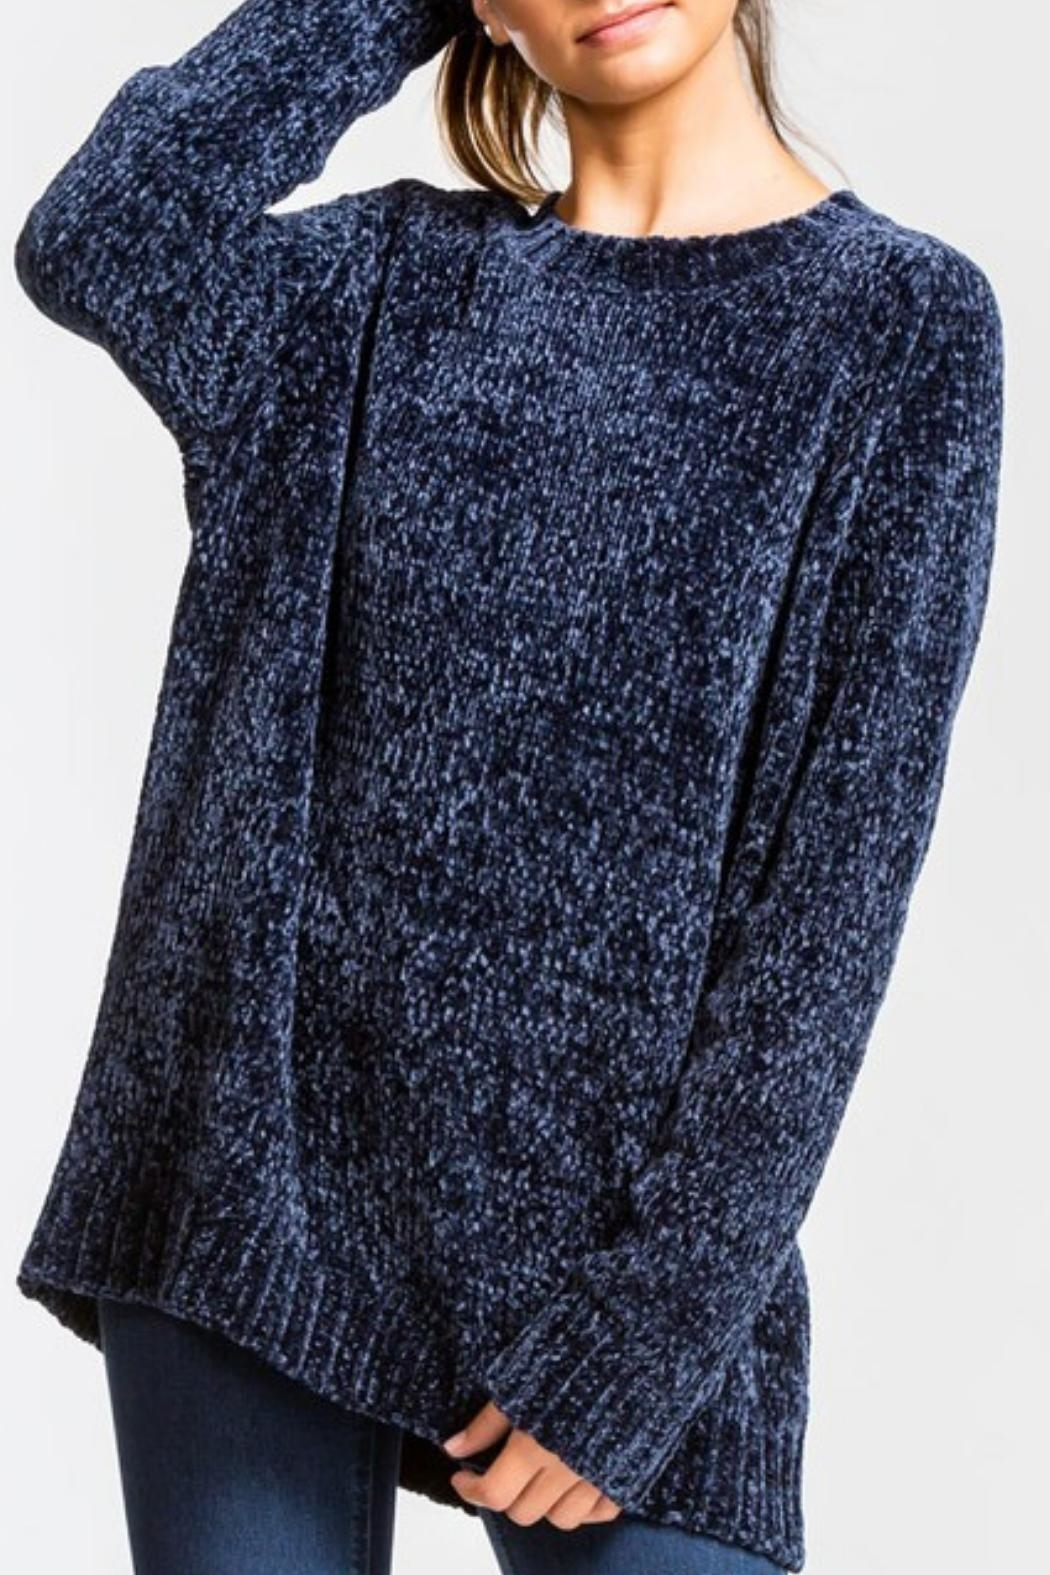 89282f2db5e Cherish Midnight Chenille Sweater from Chicago by Chic Boutique ...